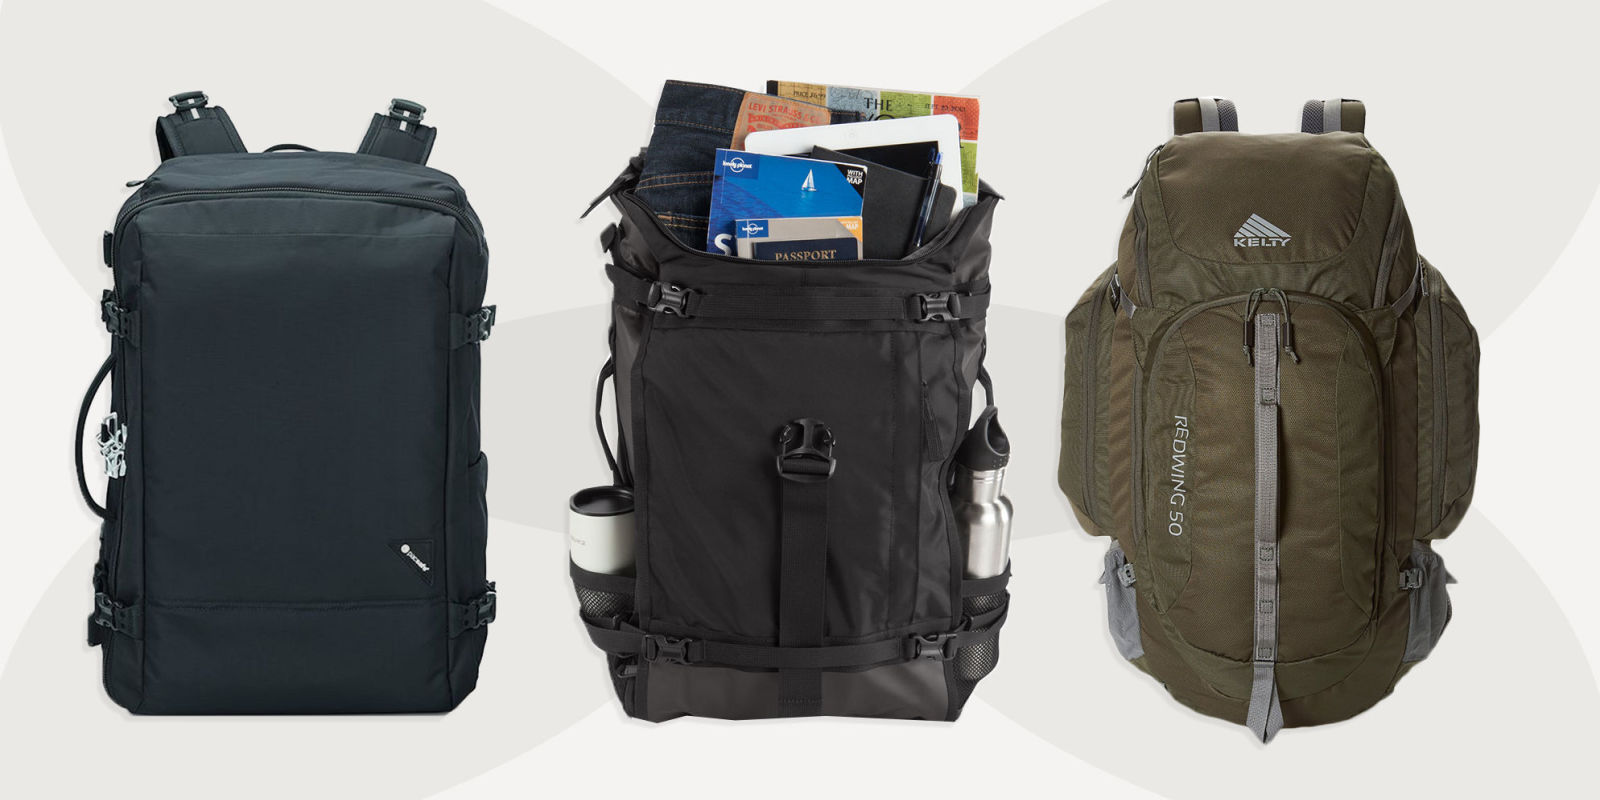 11 Best Travel Backpacks for Long Trips in 2018